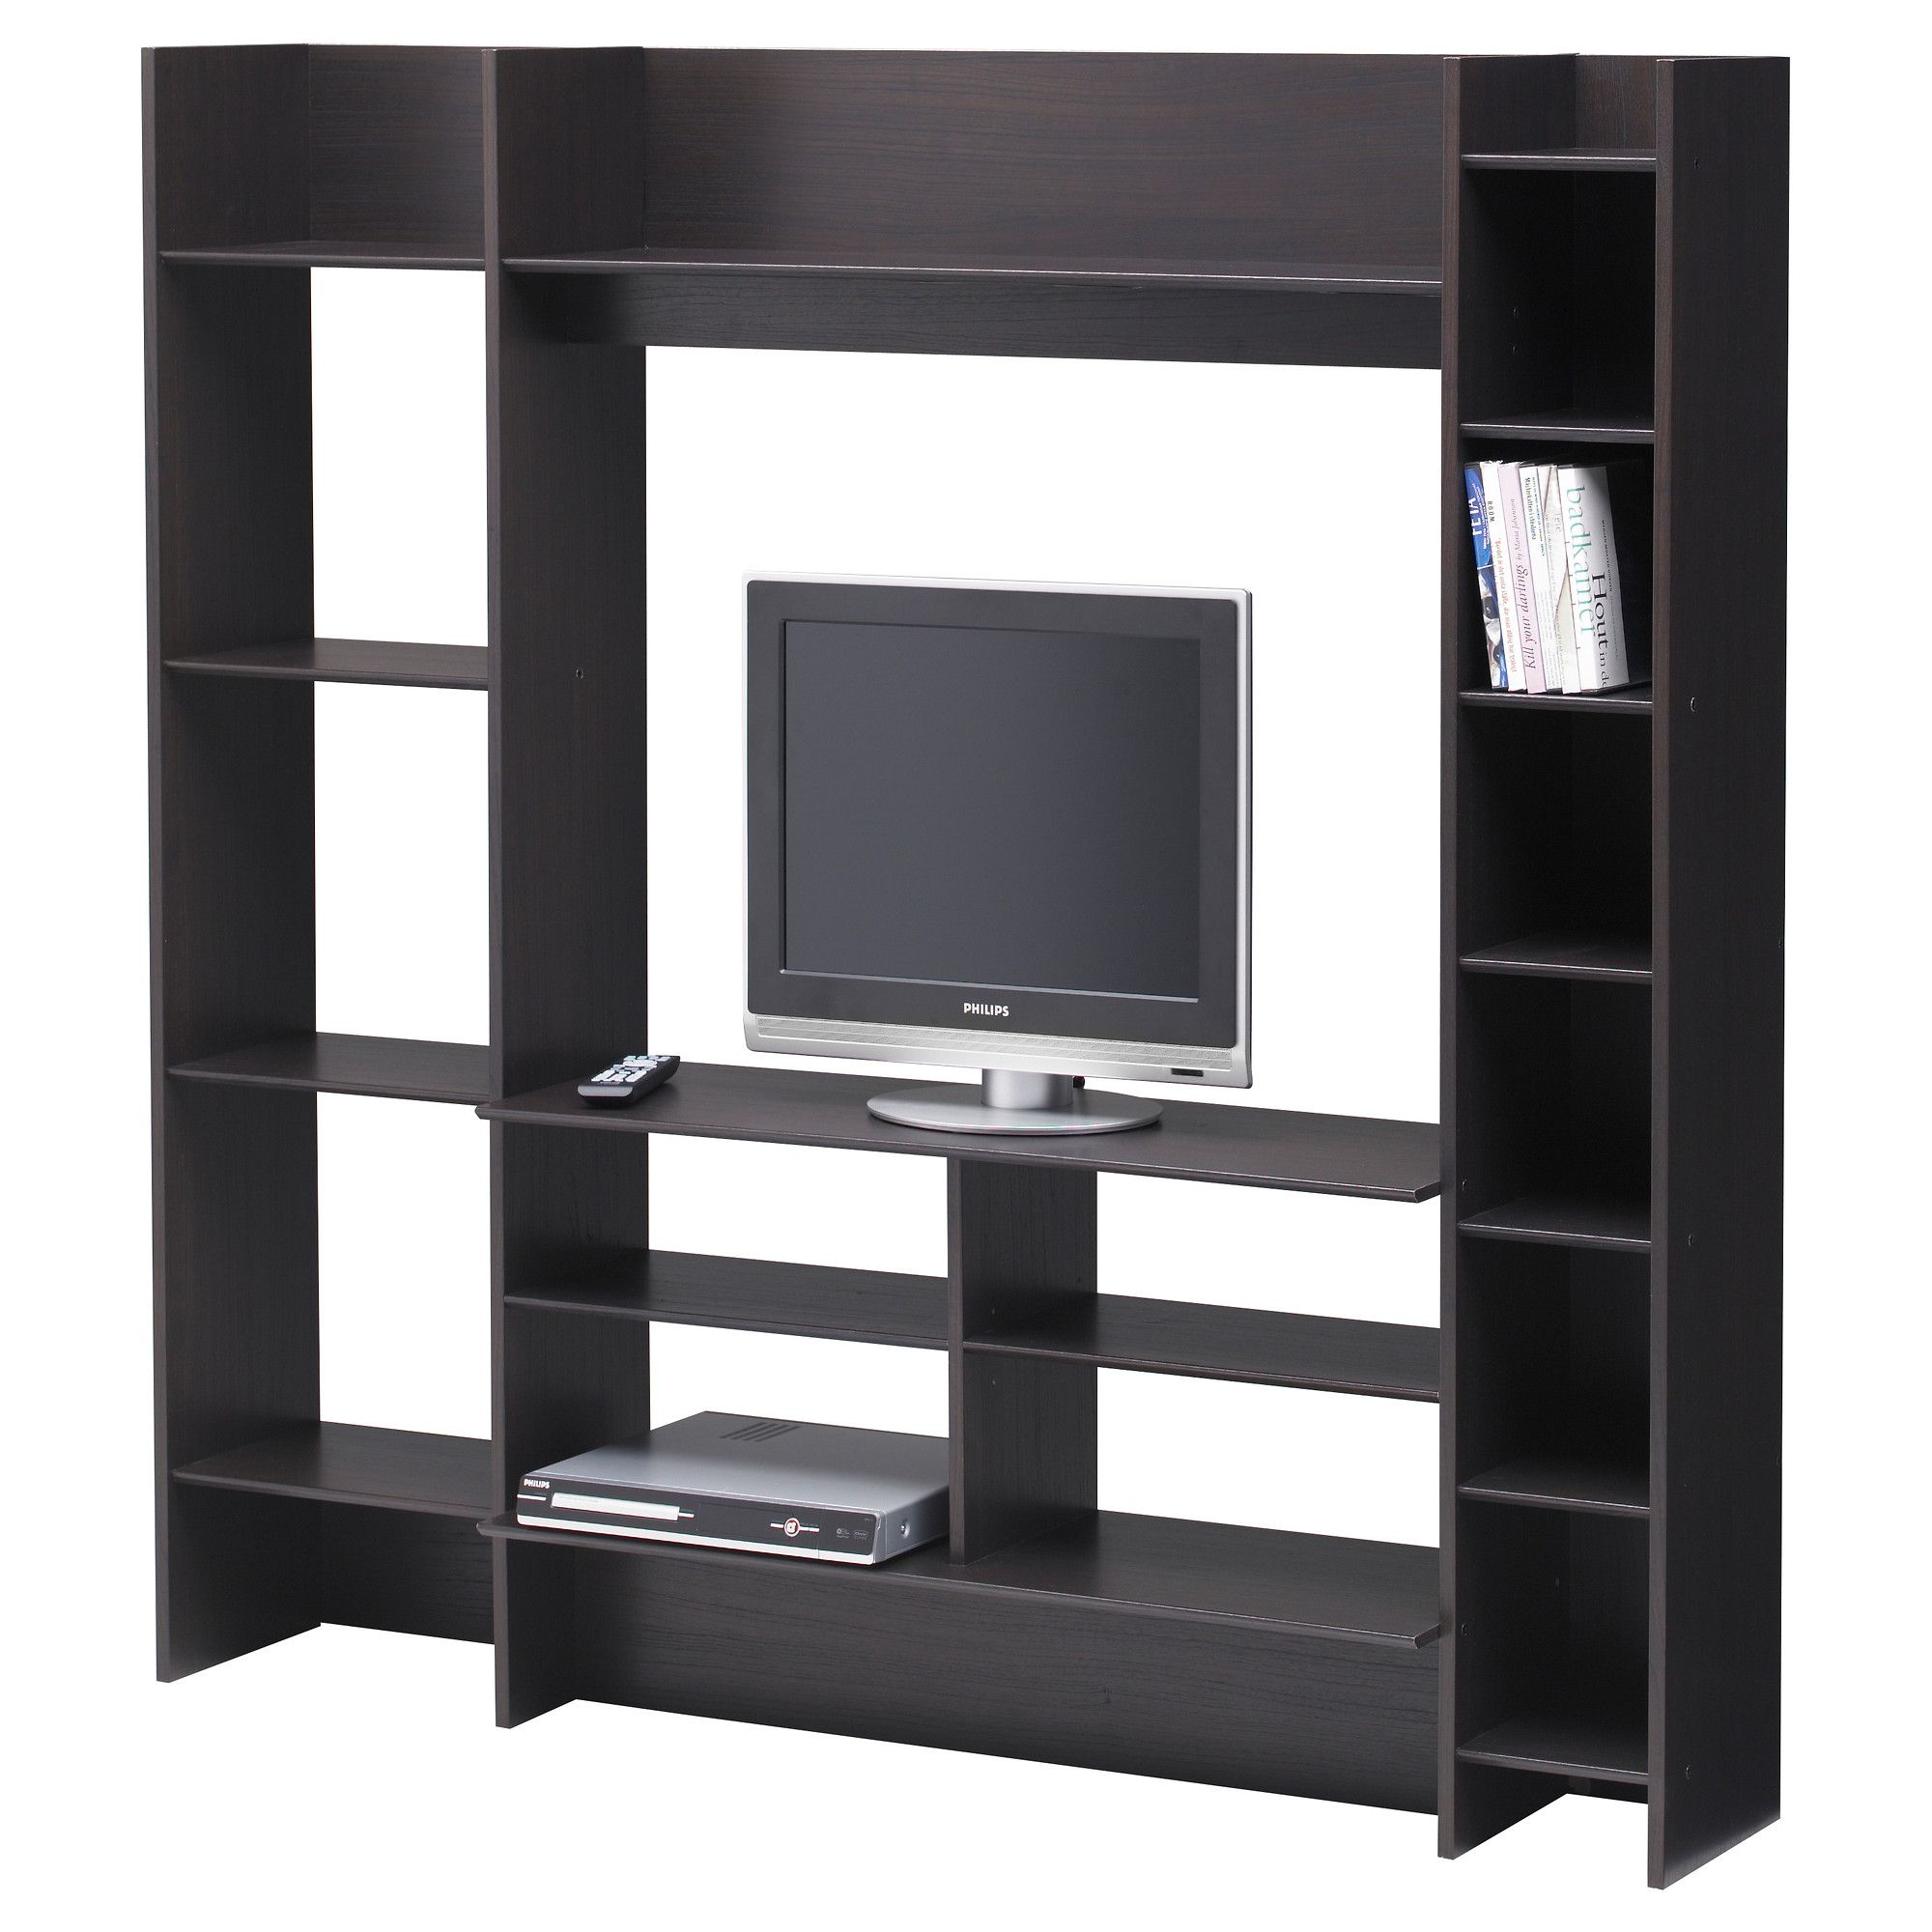 mavas entertainment center ikea best bet for the fits perfectly for my bedroom. Black Bedroom Furniture Sets. Home Design Ideas